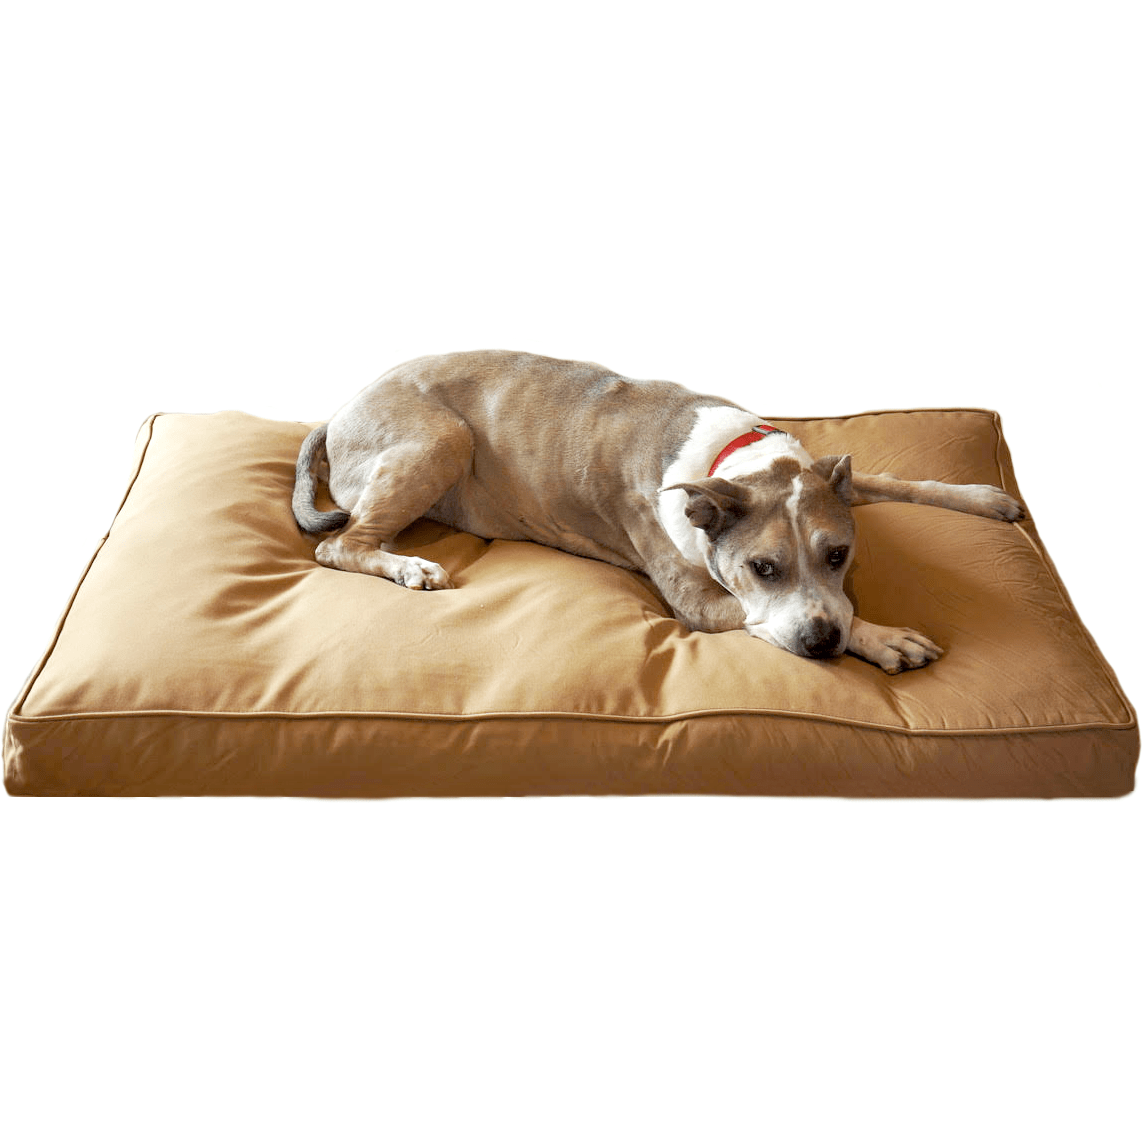 "Chew Resistant Dog Bed With 200 Day Guarantee Bully Bed bullybeds.com Medium $129.99 - 34""x22""x4"" Tan"